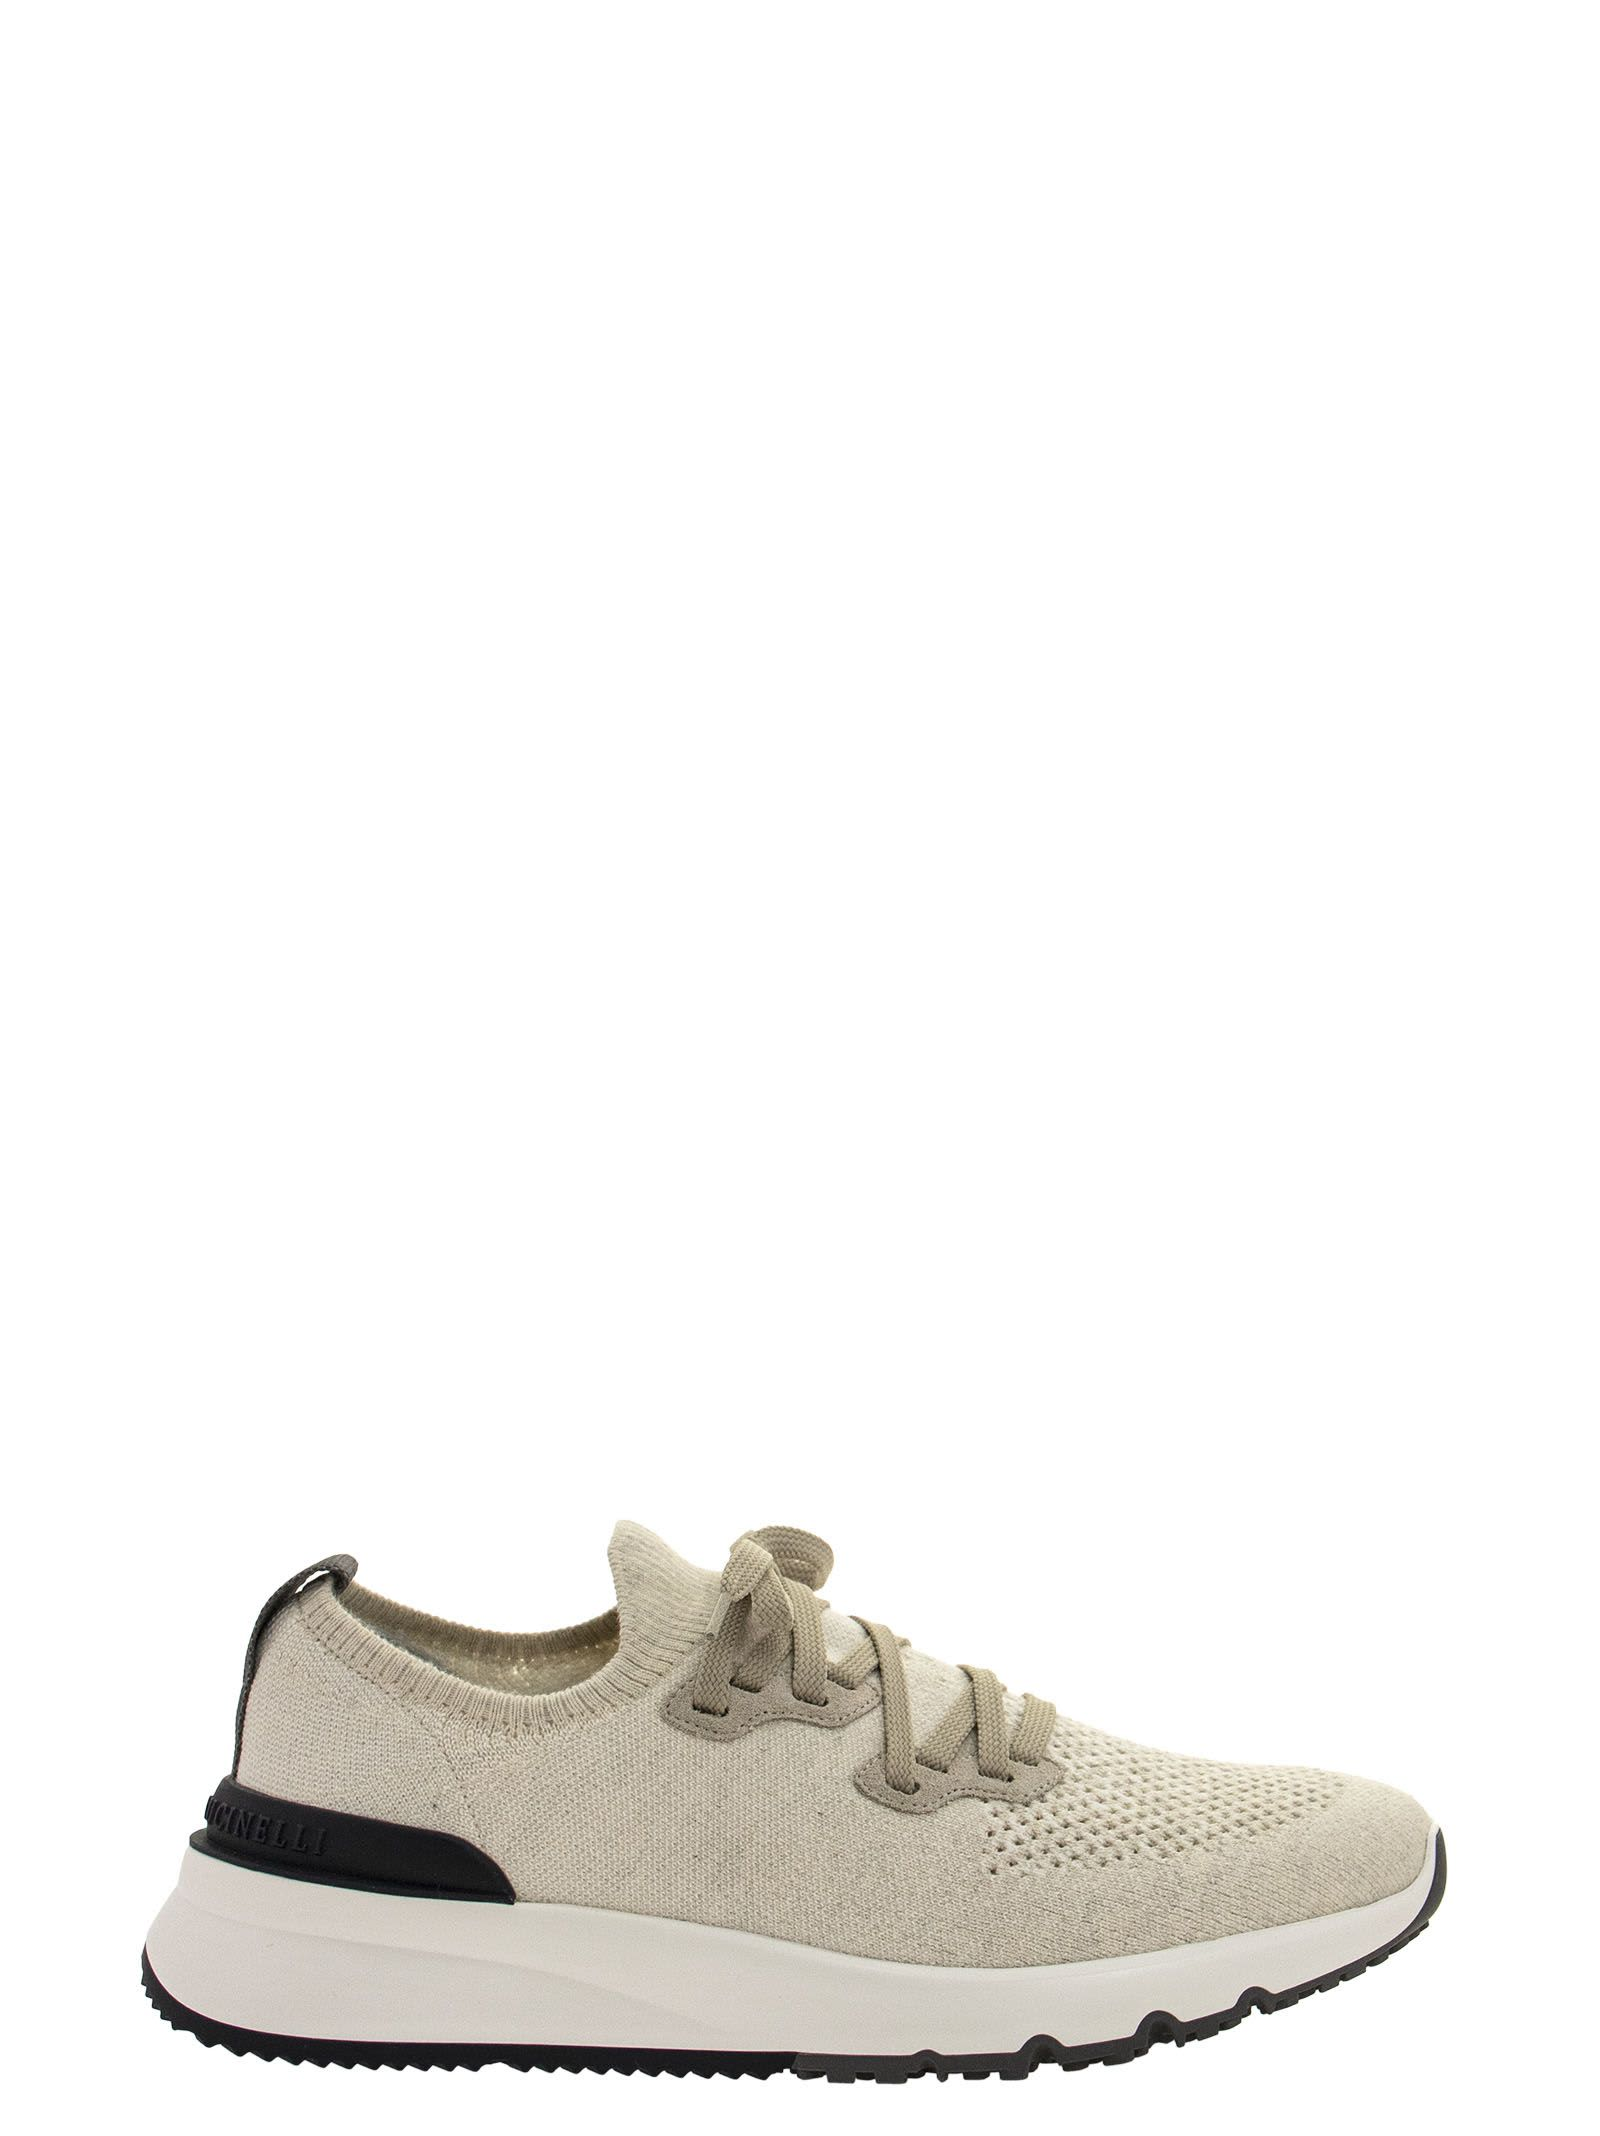 Brunello Cucinelli COTTON CHINÉ KNIT RUNNERS SNEAKERS PANAMA